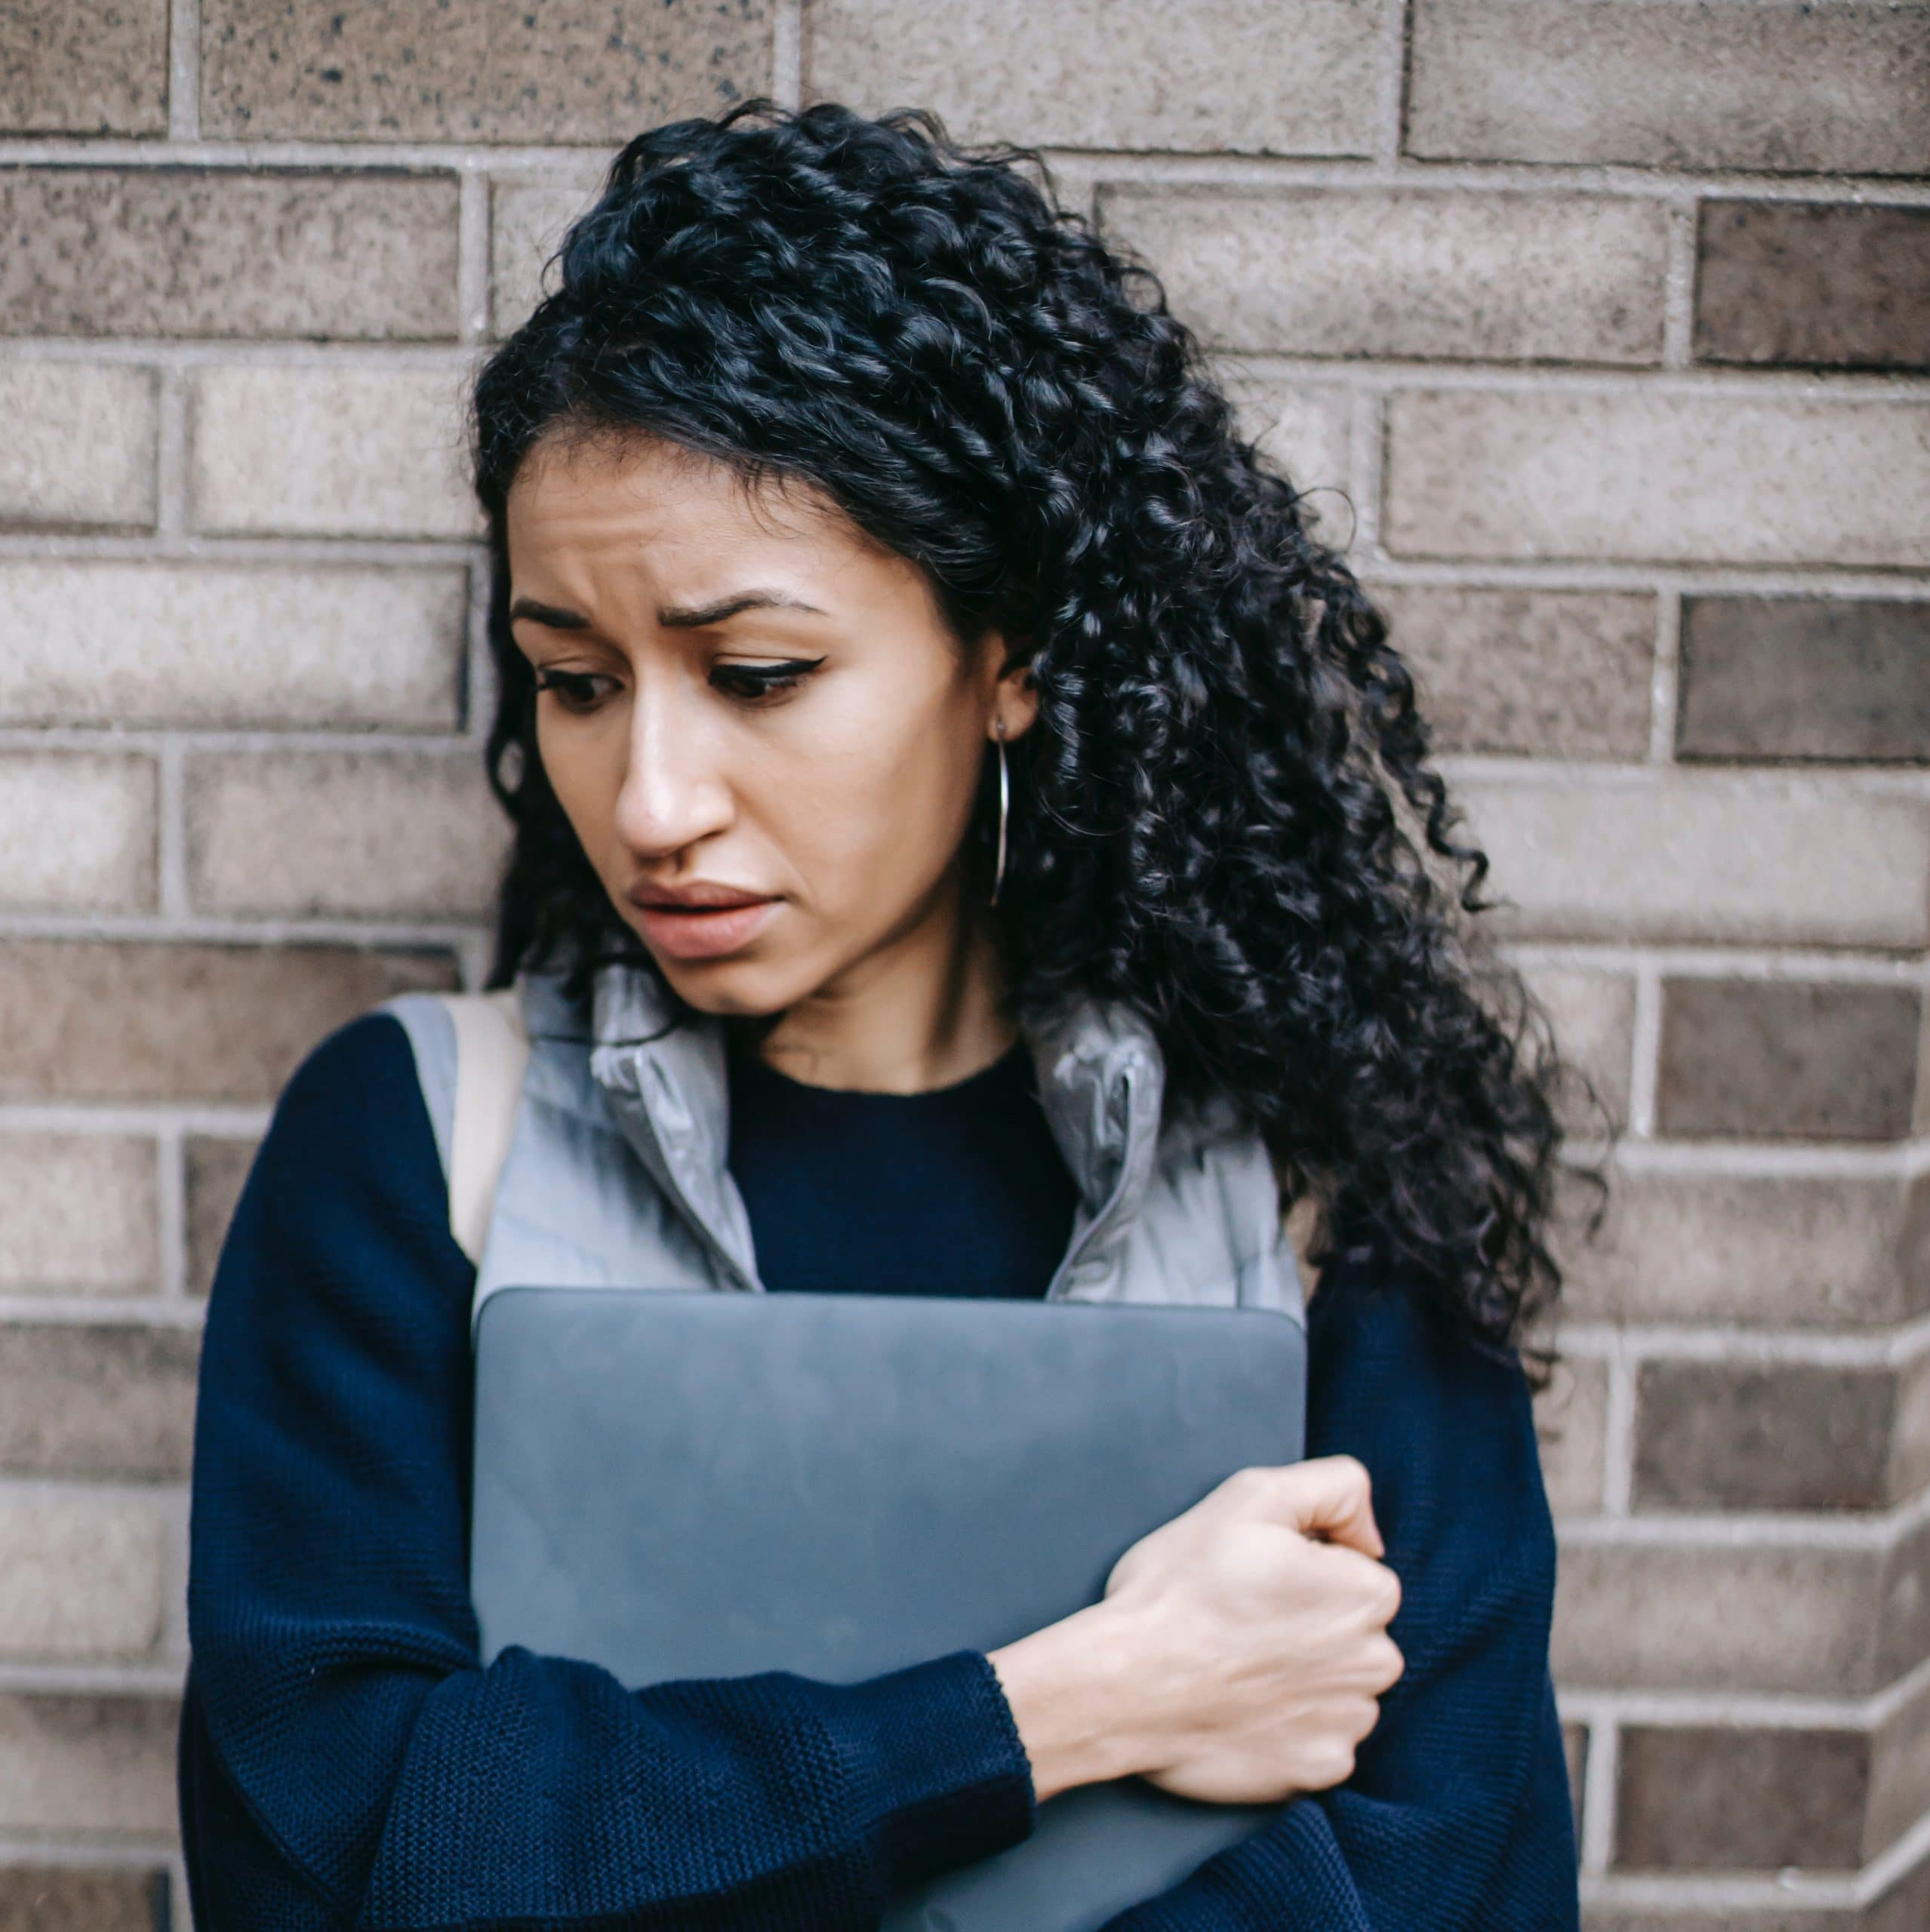 Trauma can affect anyone at any time. A Latina woman leans against a brick wall while holding a laptop and looking anxious.